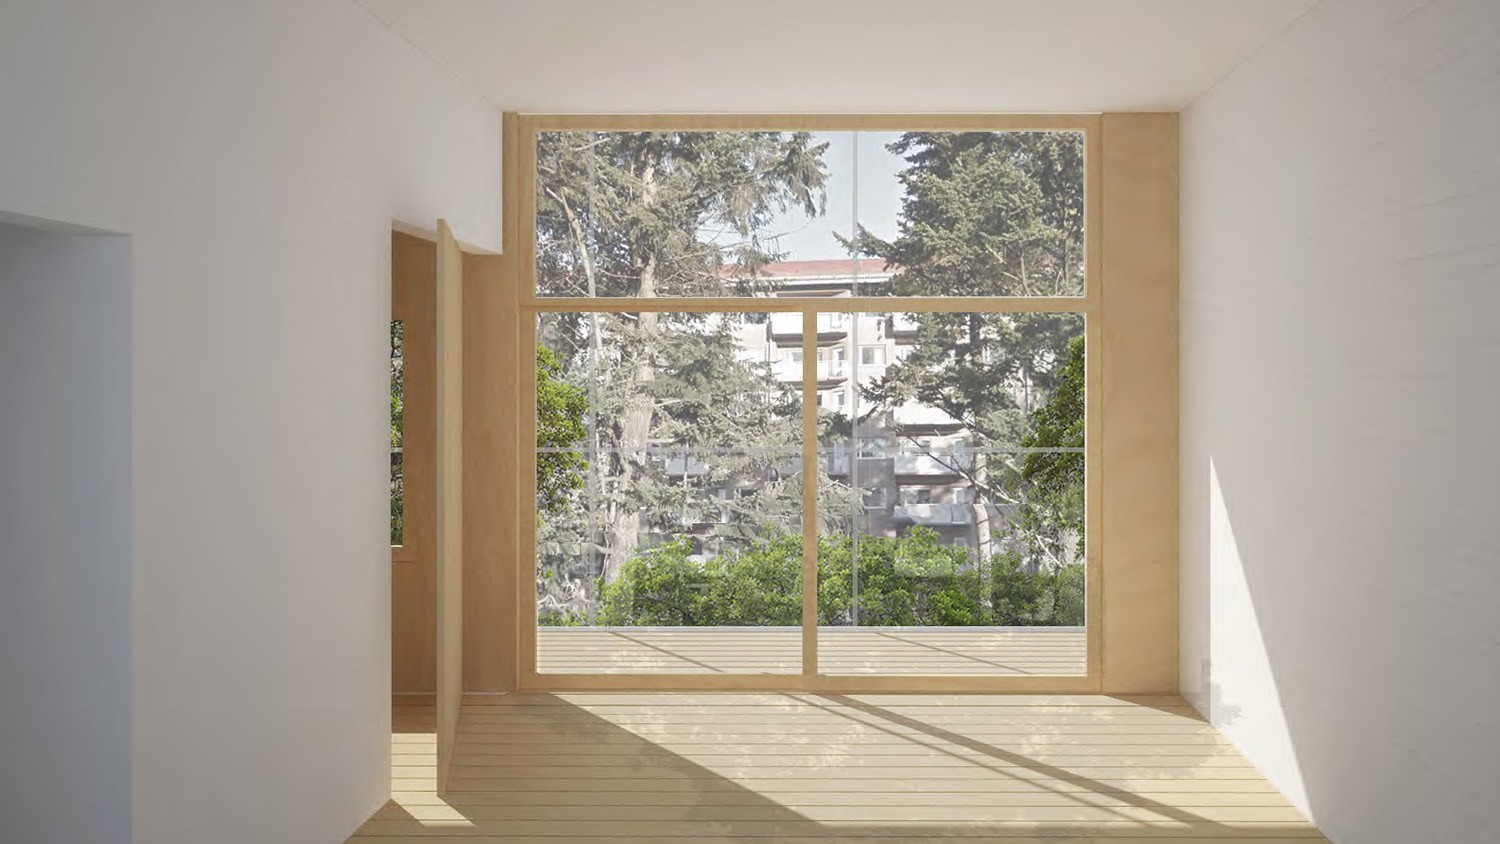 https://s3.us-east-2.amazonaws.com/steven-holl/uploads/projects/project-images/StevenHollArchitects_Meander_04 Interior_WH.jpg